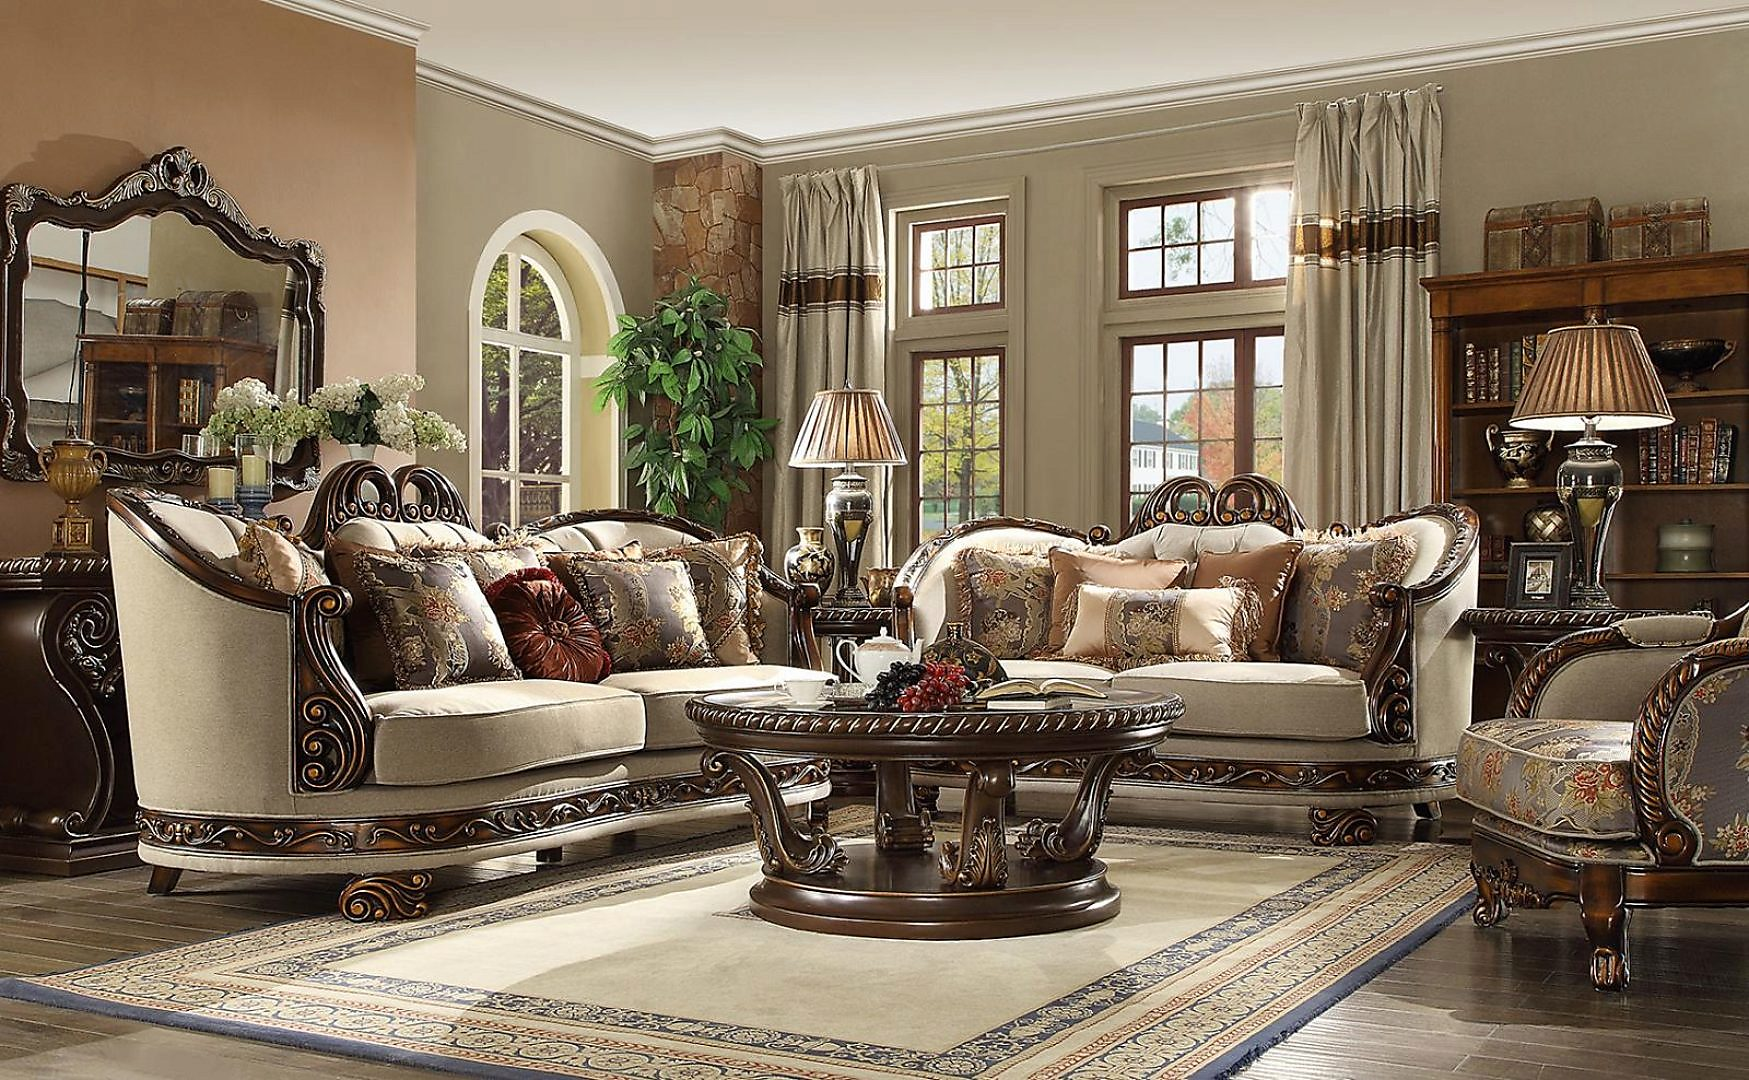 Traditional Luxurious Hd-1623 Sofa and Loveseat Set 2Pcs by Homey Design